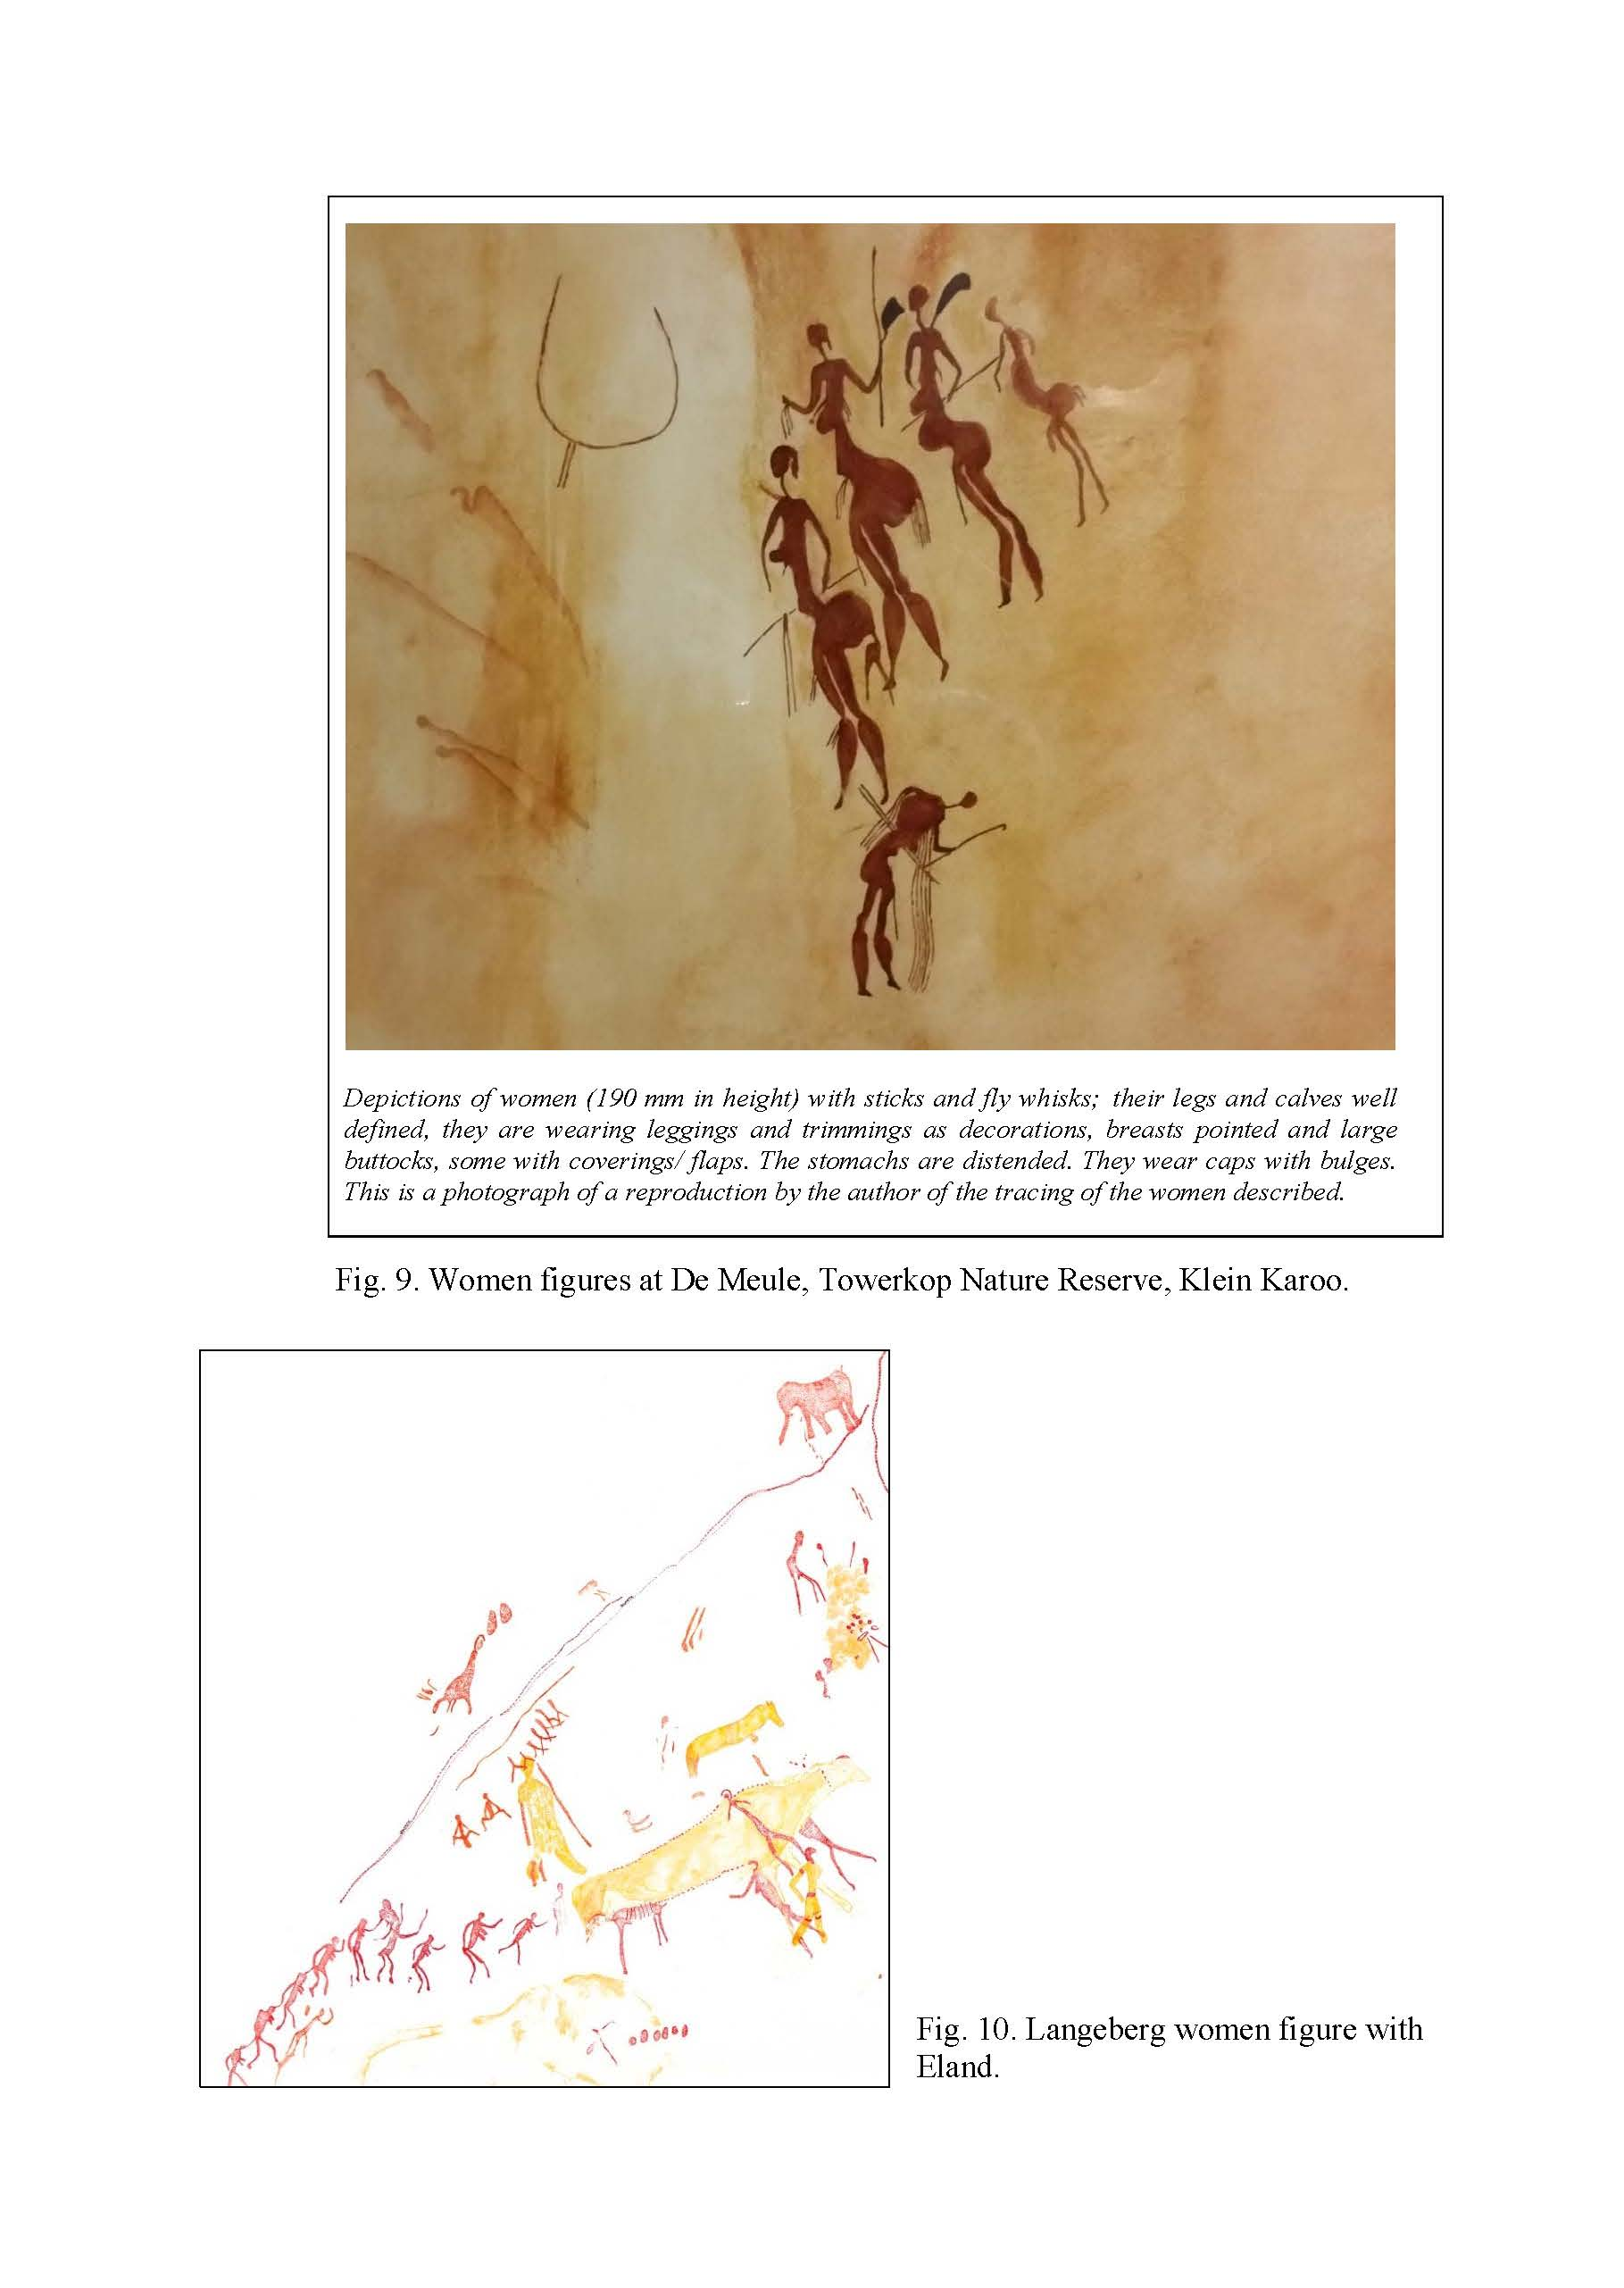 Rock Paintings of the Klein Karoo and a Link to a Local Story